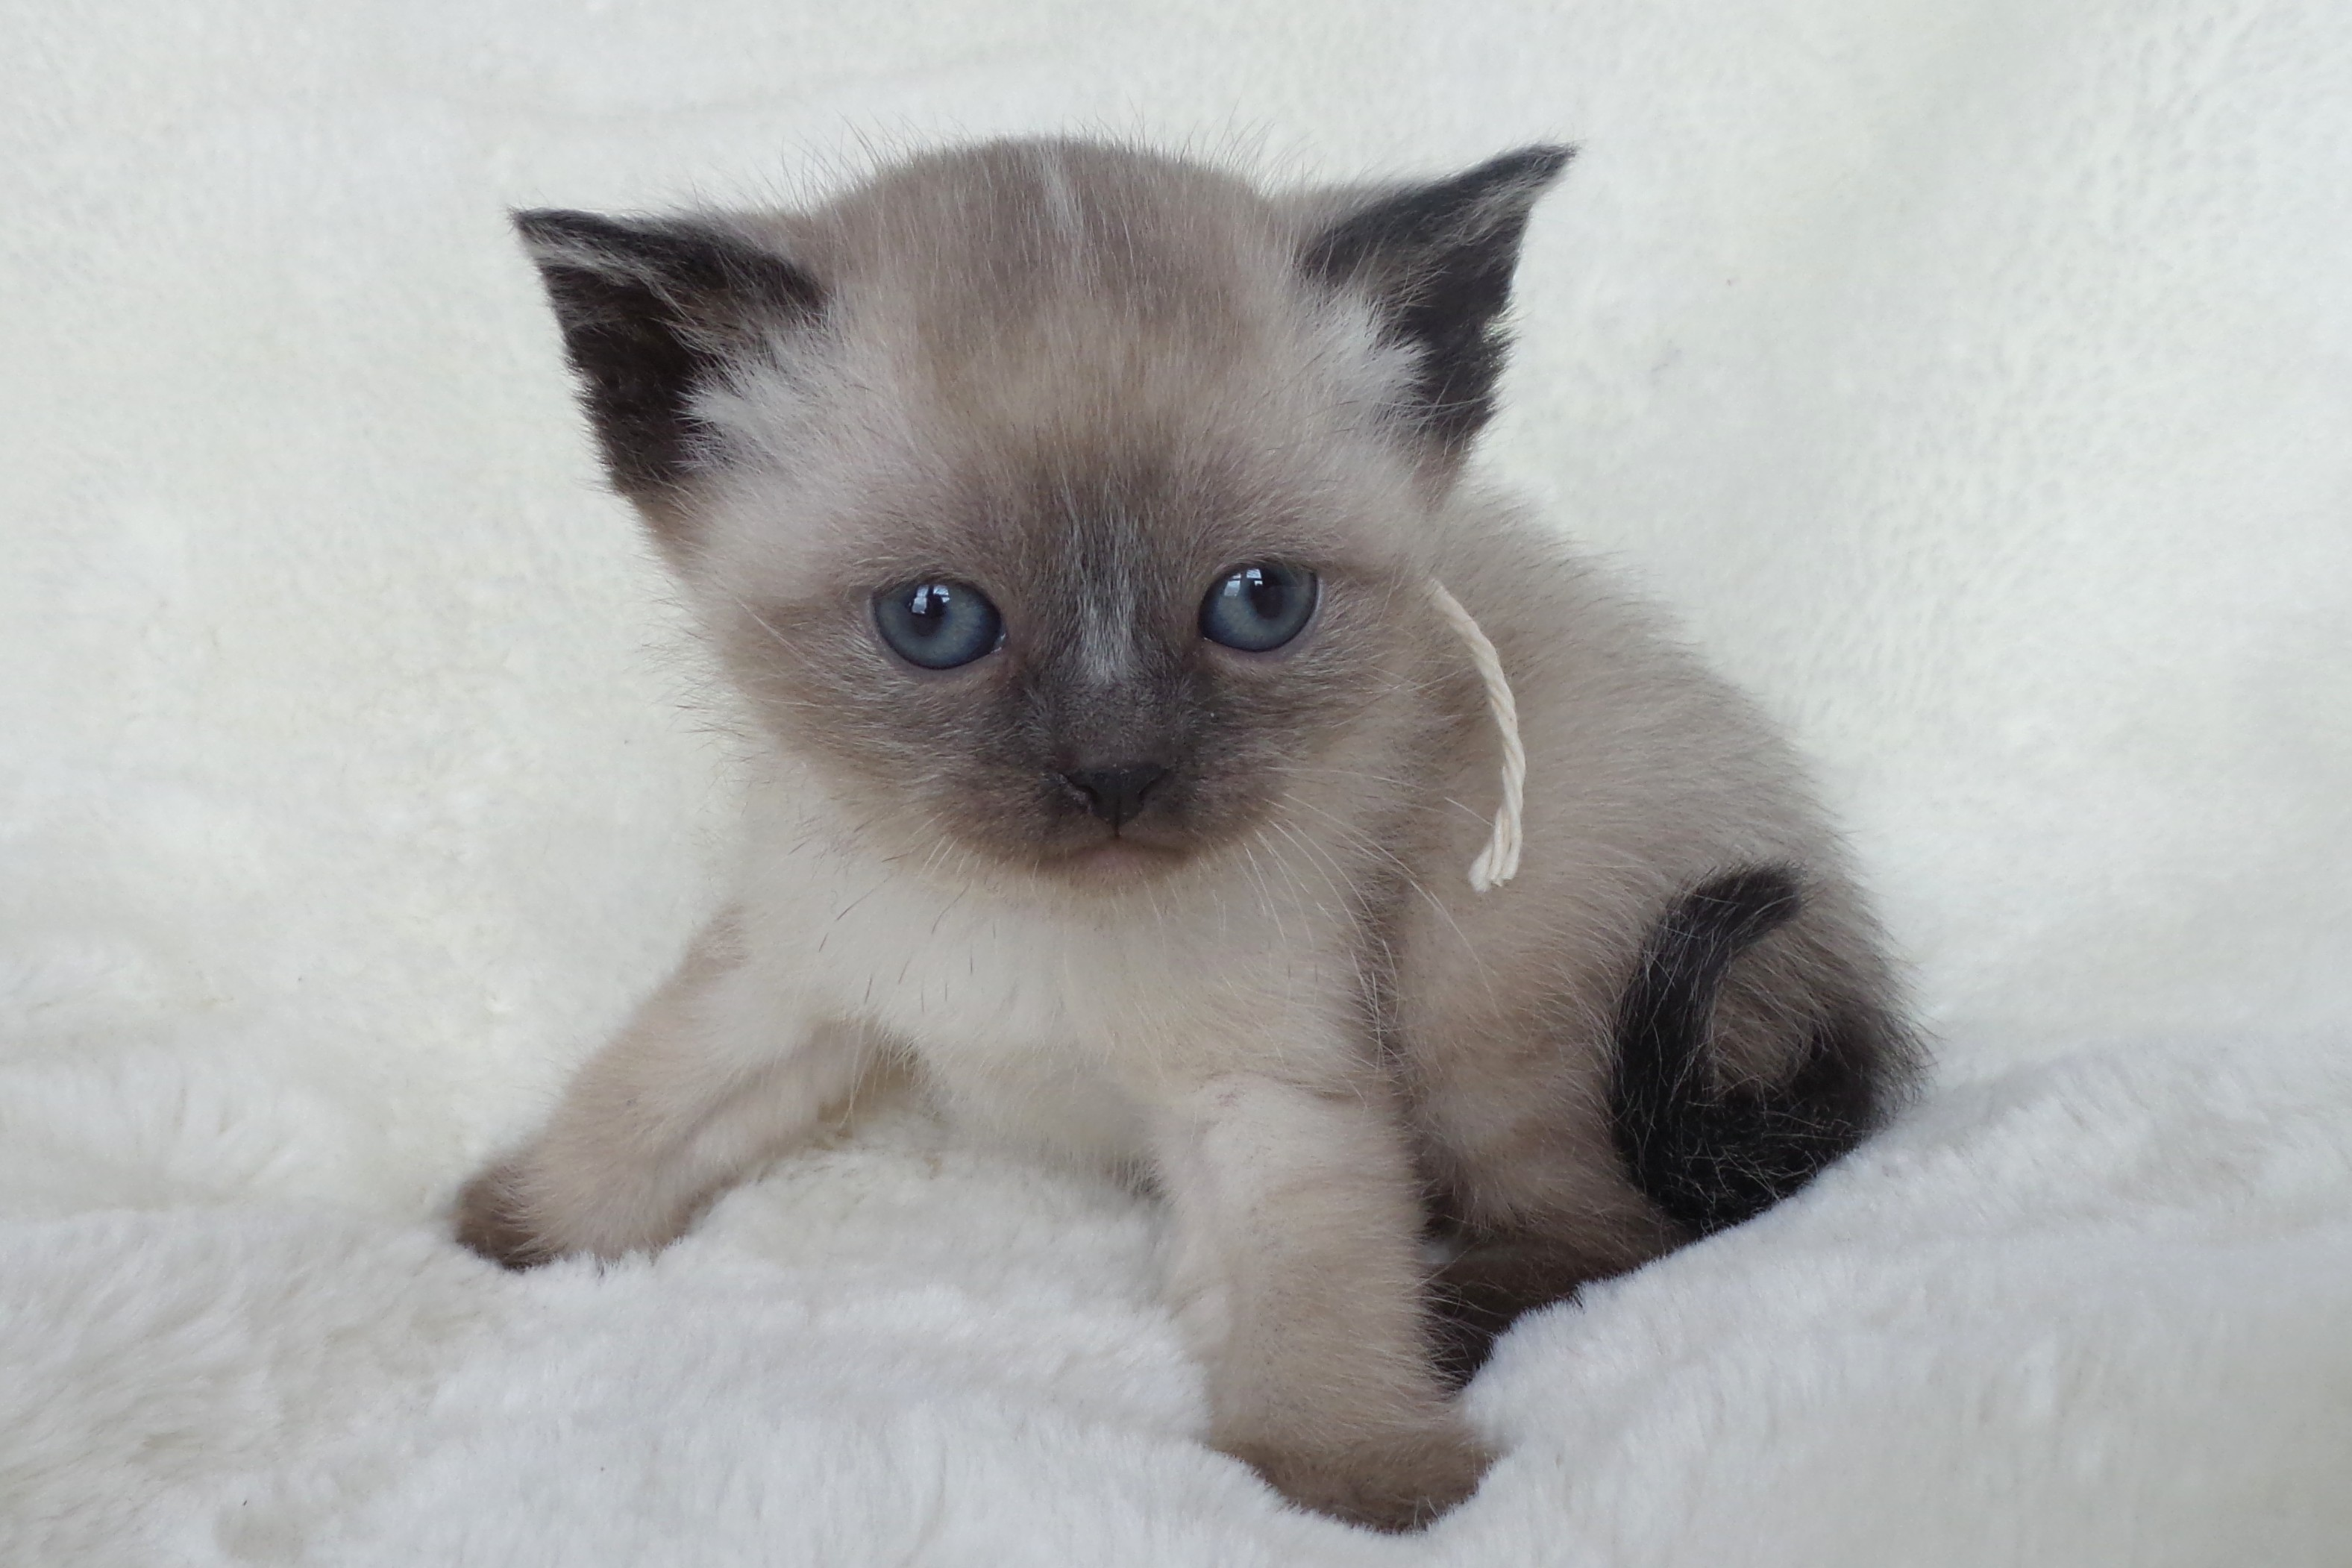 Mitten Kittens Siamese Kitten Breeder from Michigan